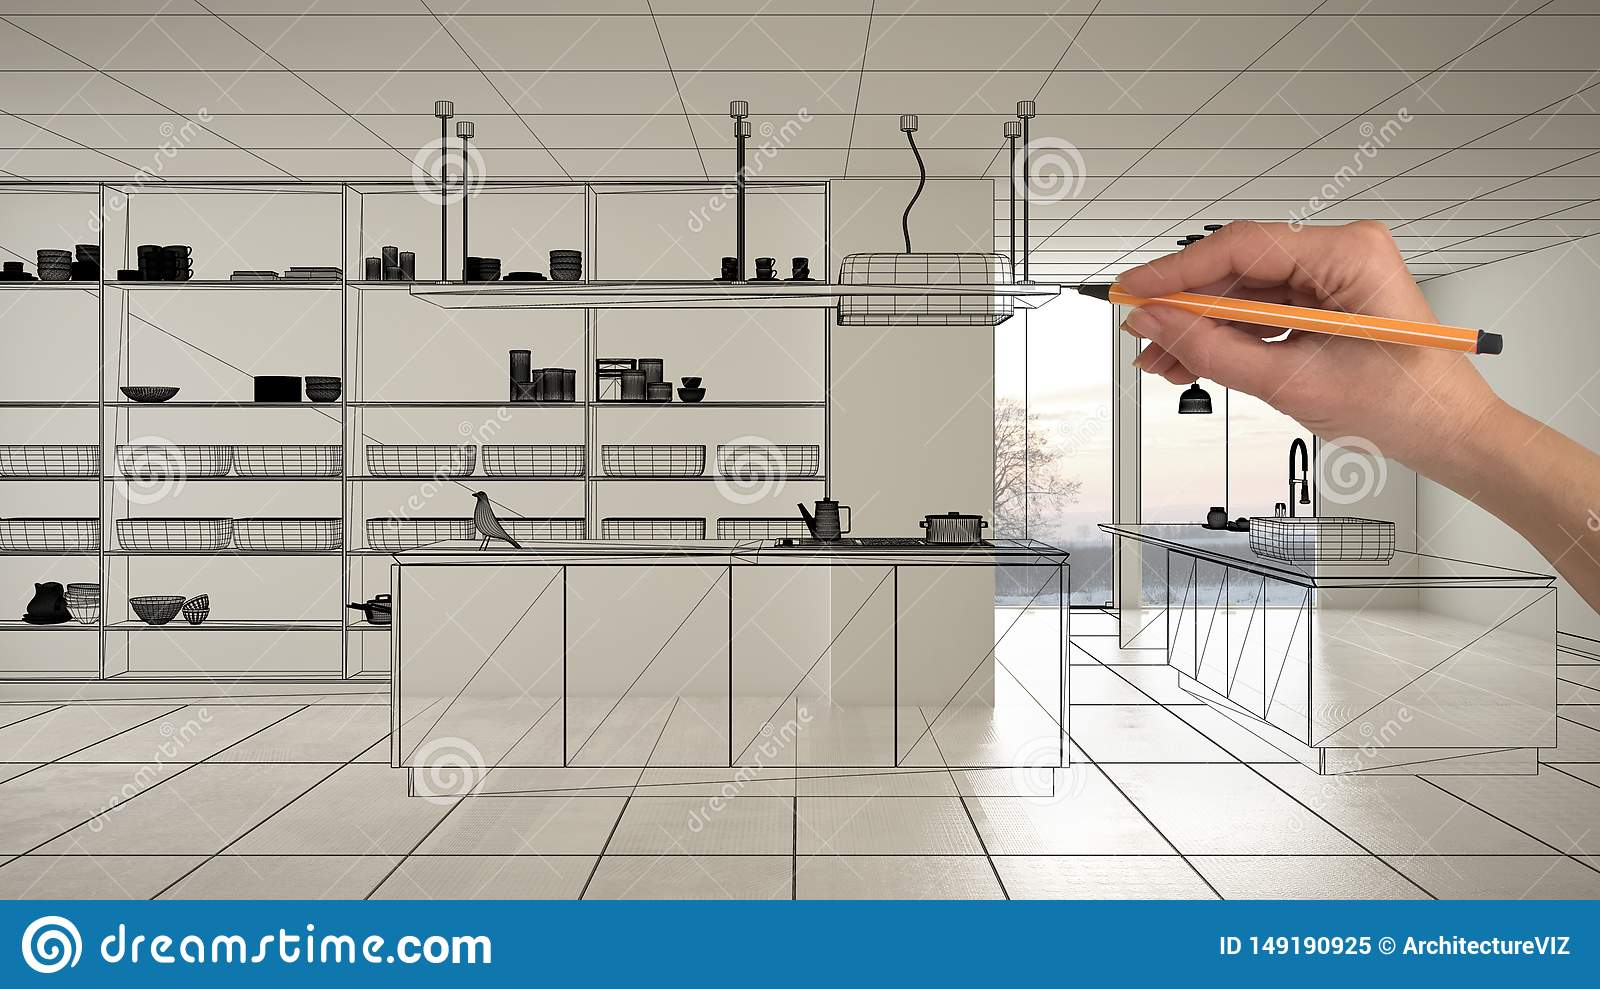 Empty white interior with white marble ceramic tiles, hand drawing custom architecture design, black ink sketch, blueprint showing